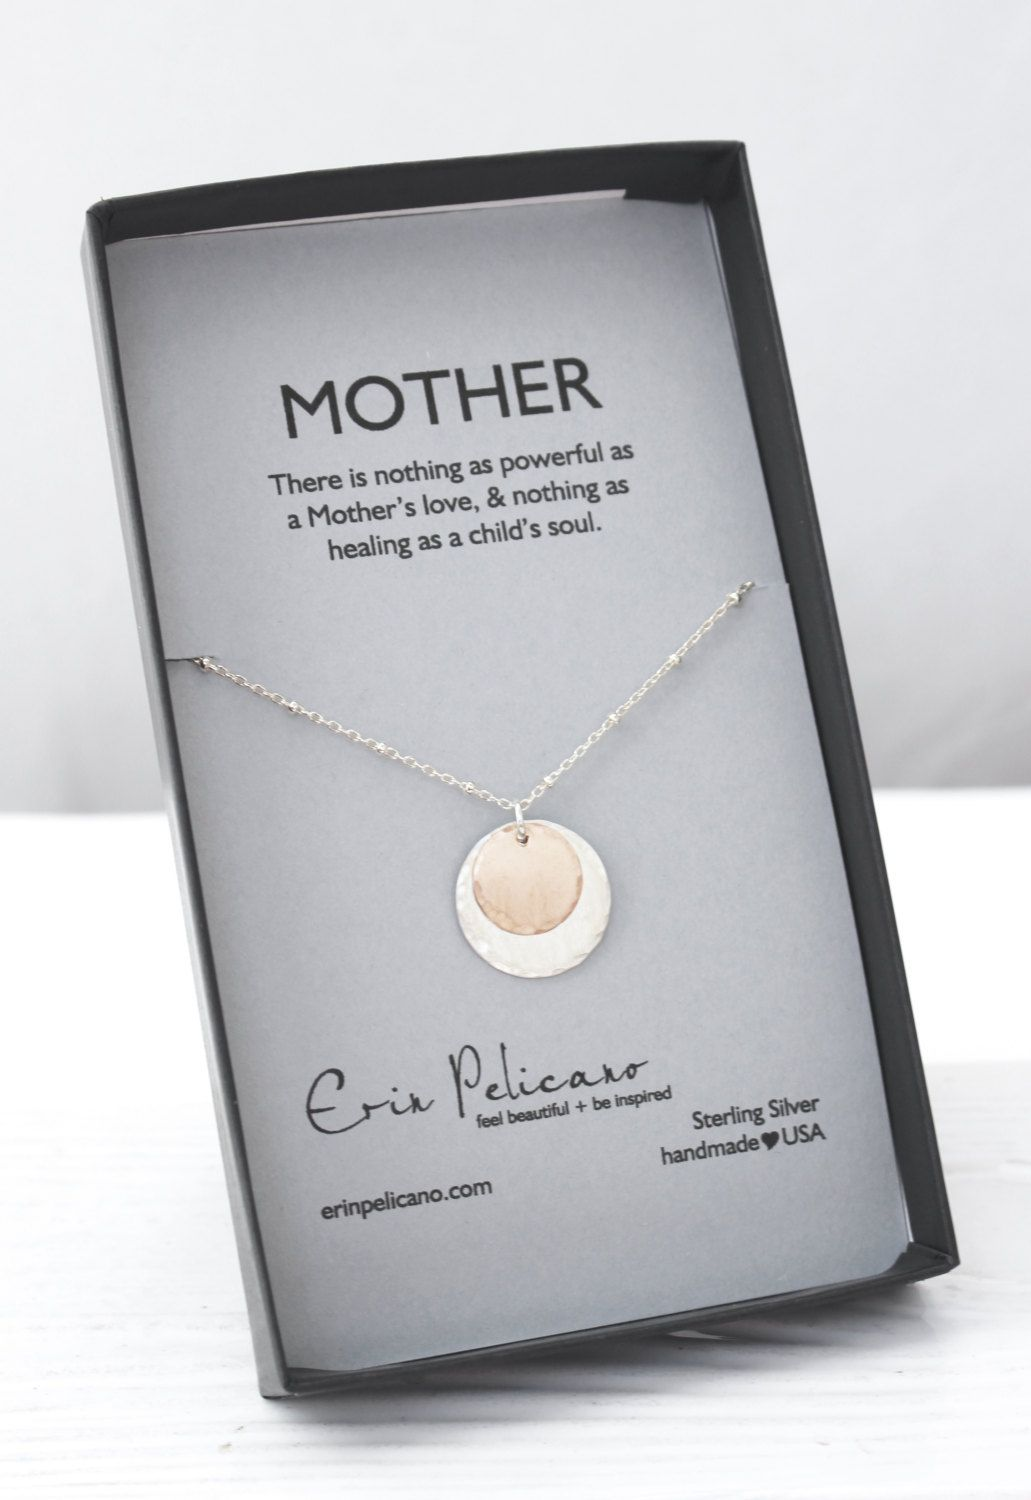 Mother Jewelry Mothers Day Mom Necklace Birthday Gift Of Groom New Baby Bride From Son By Erinpelicano